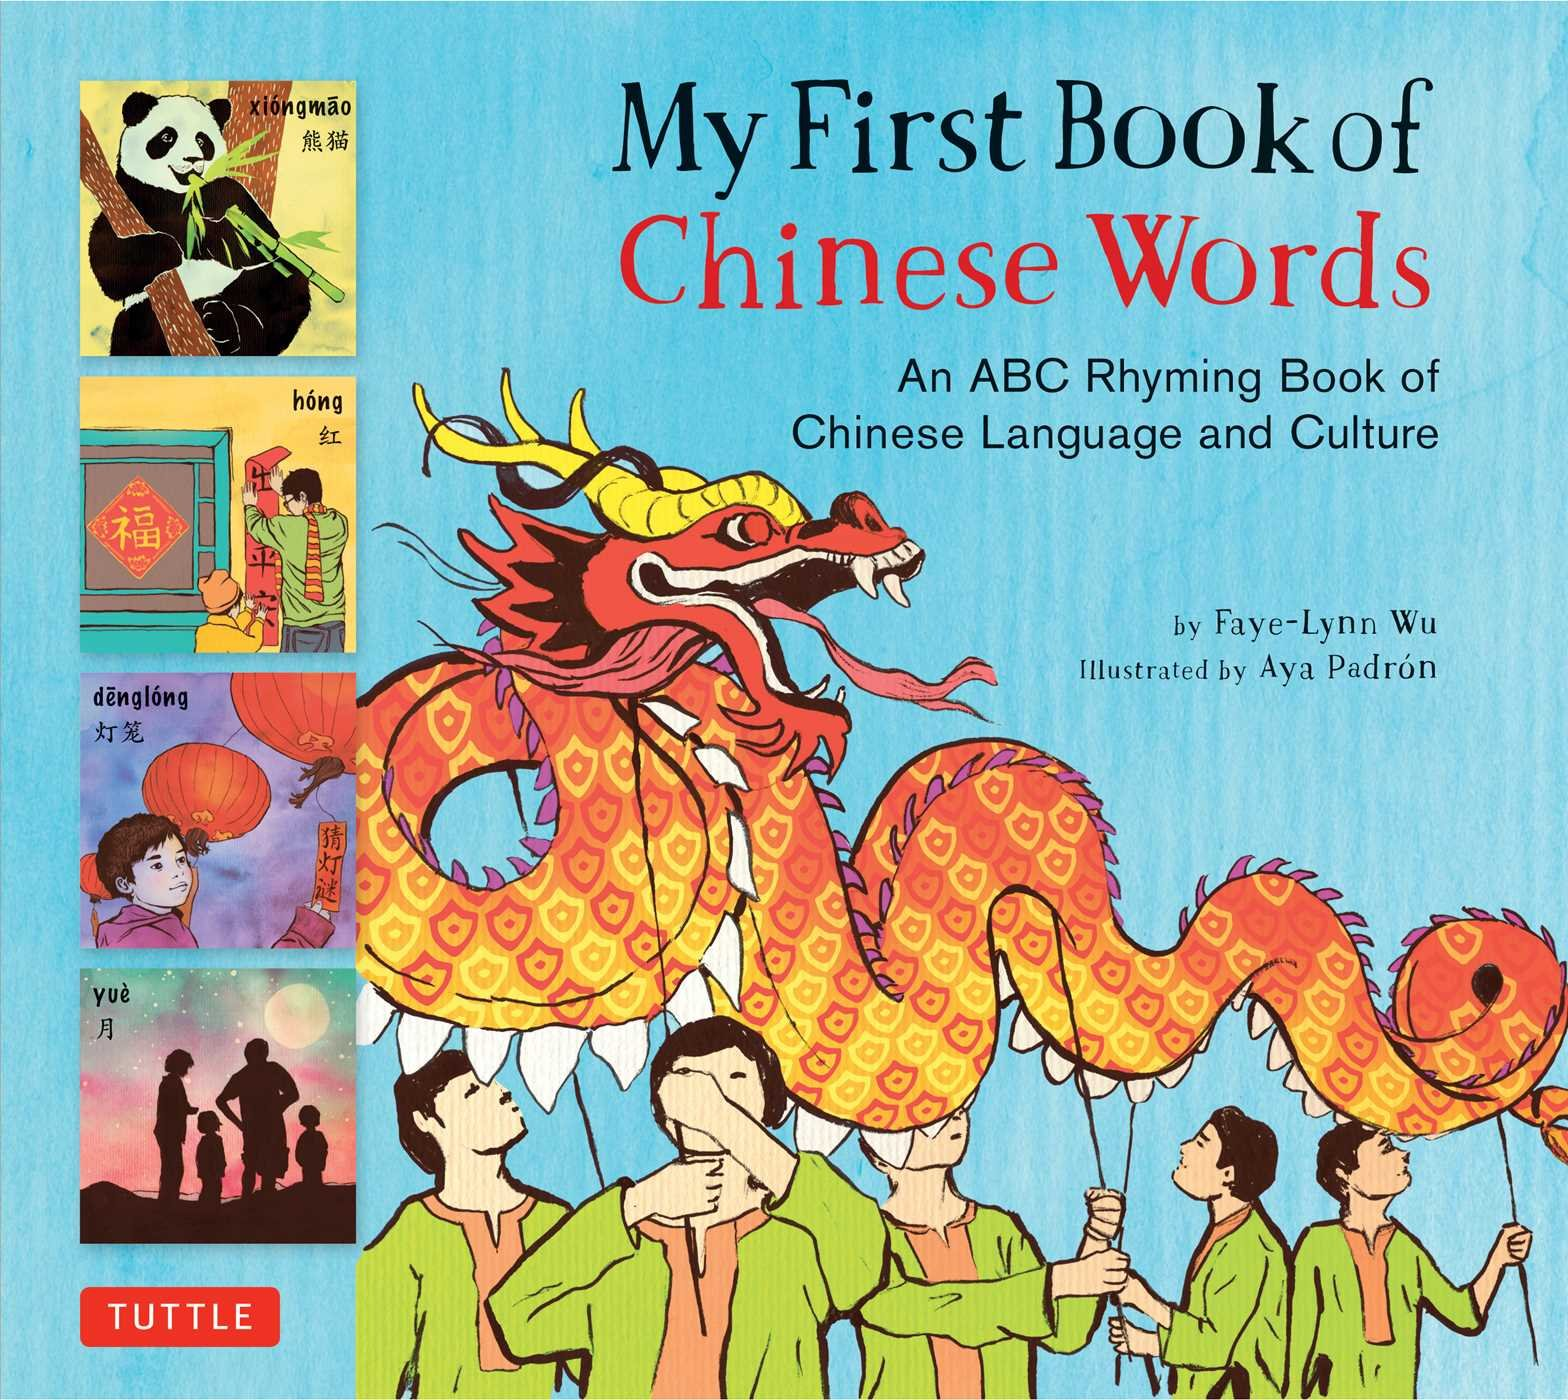 My First Book of Chinese Words: An ABC Rhyming Book of Chinese Language and Culture